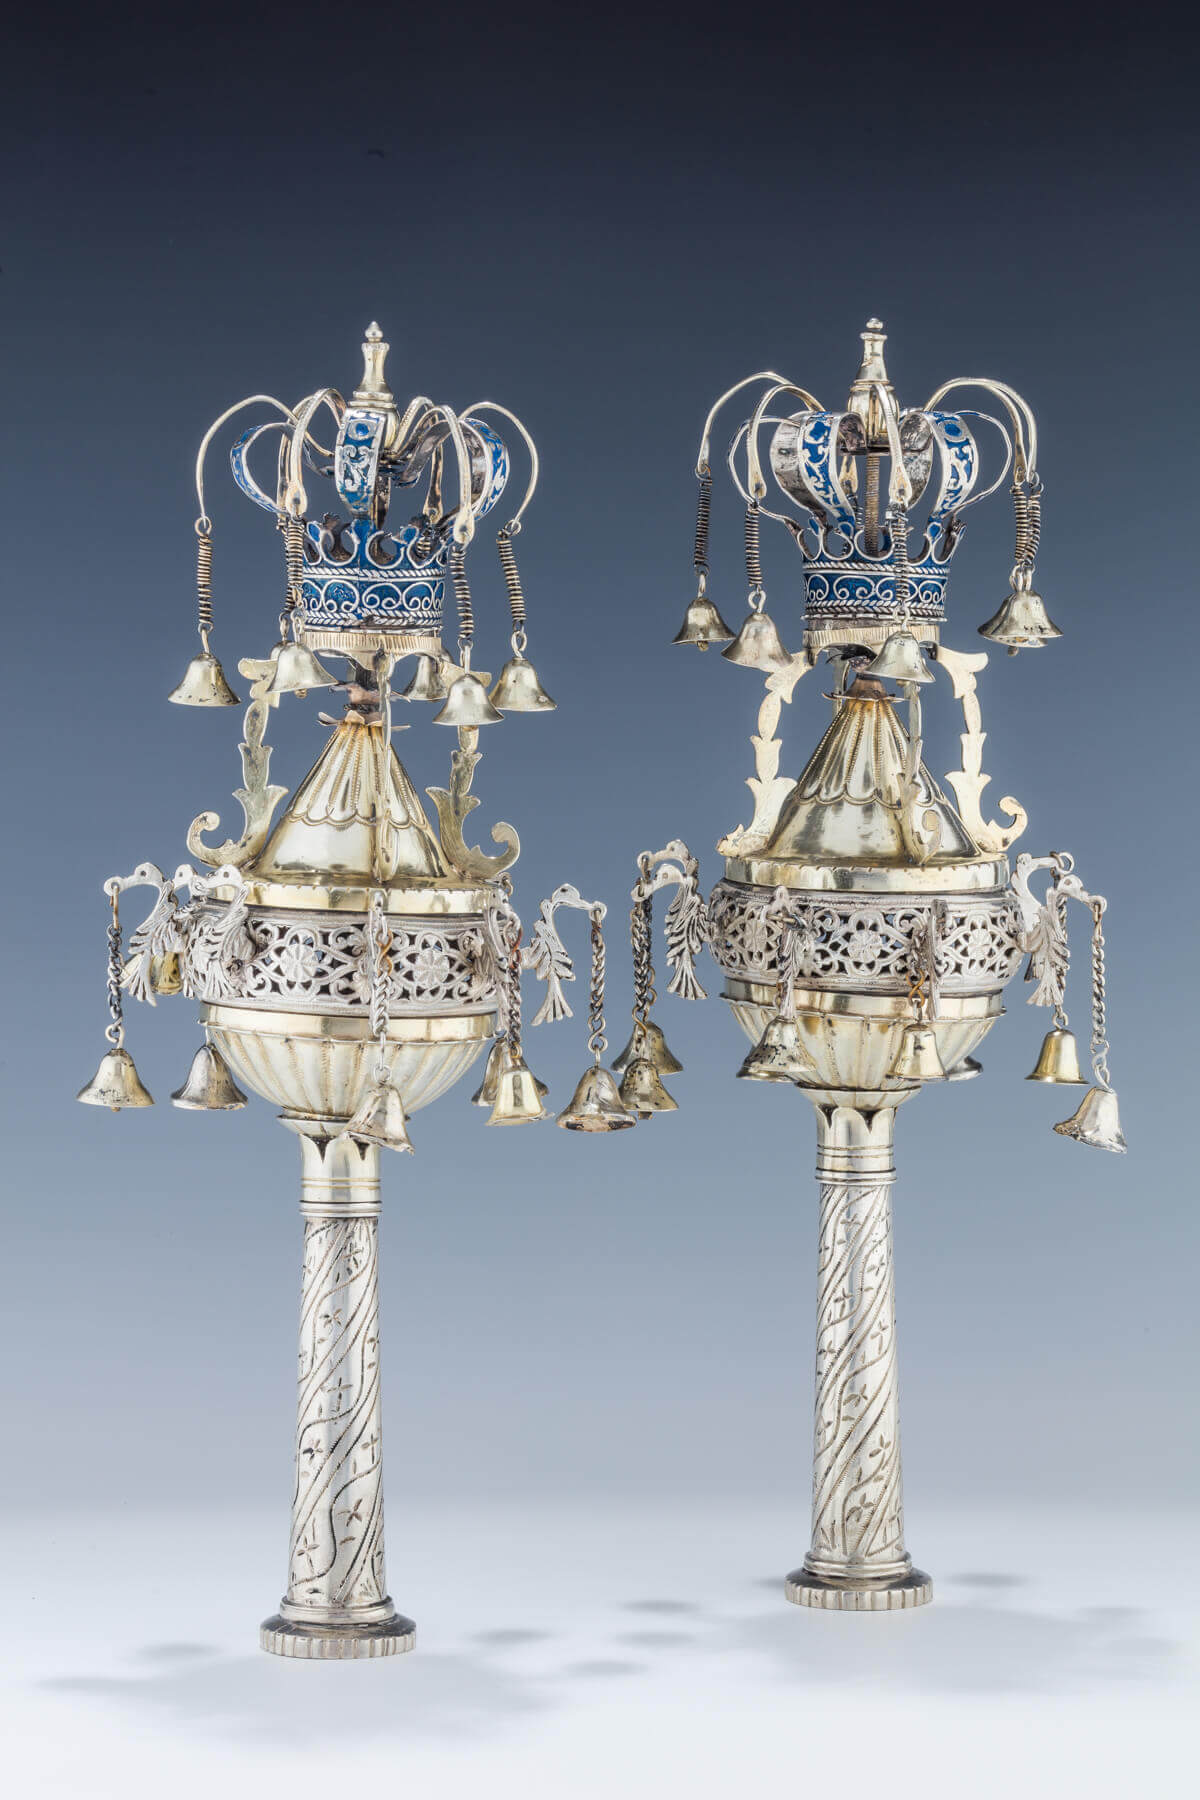 090. A PAIR OF PARCEL GILT TORAH FINIALS